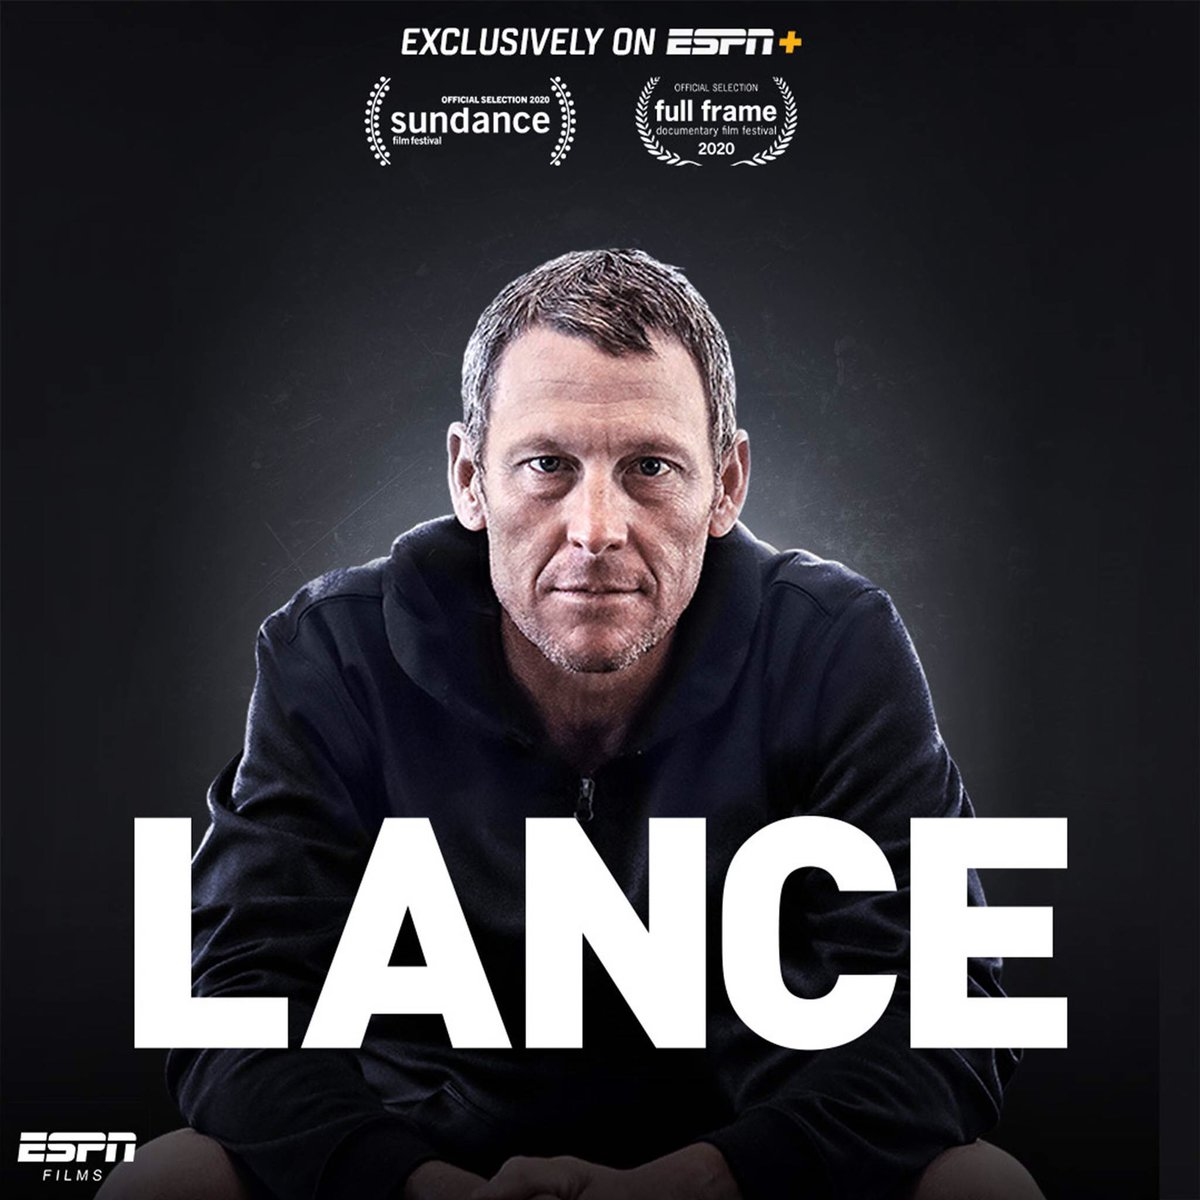 Thank you for the red carpet premiere invite @ssoderbe and @MarinaZenovich the team @30for30 for a fantastic take on @lancearmstrong this is a must see! Puts a different perspective on a famous life. https://t.co/4f8WfDLhg2